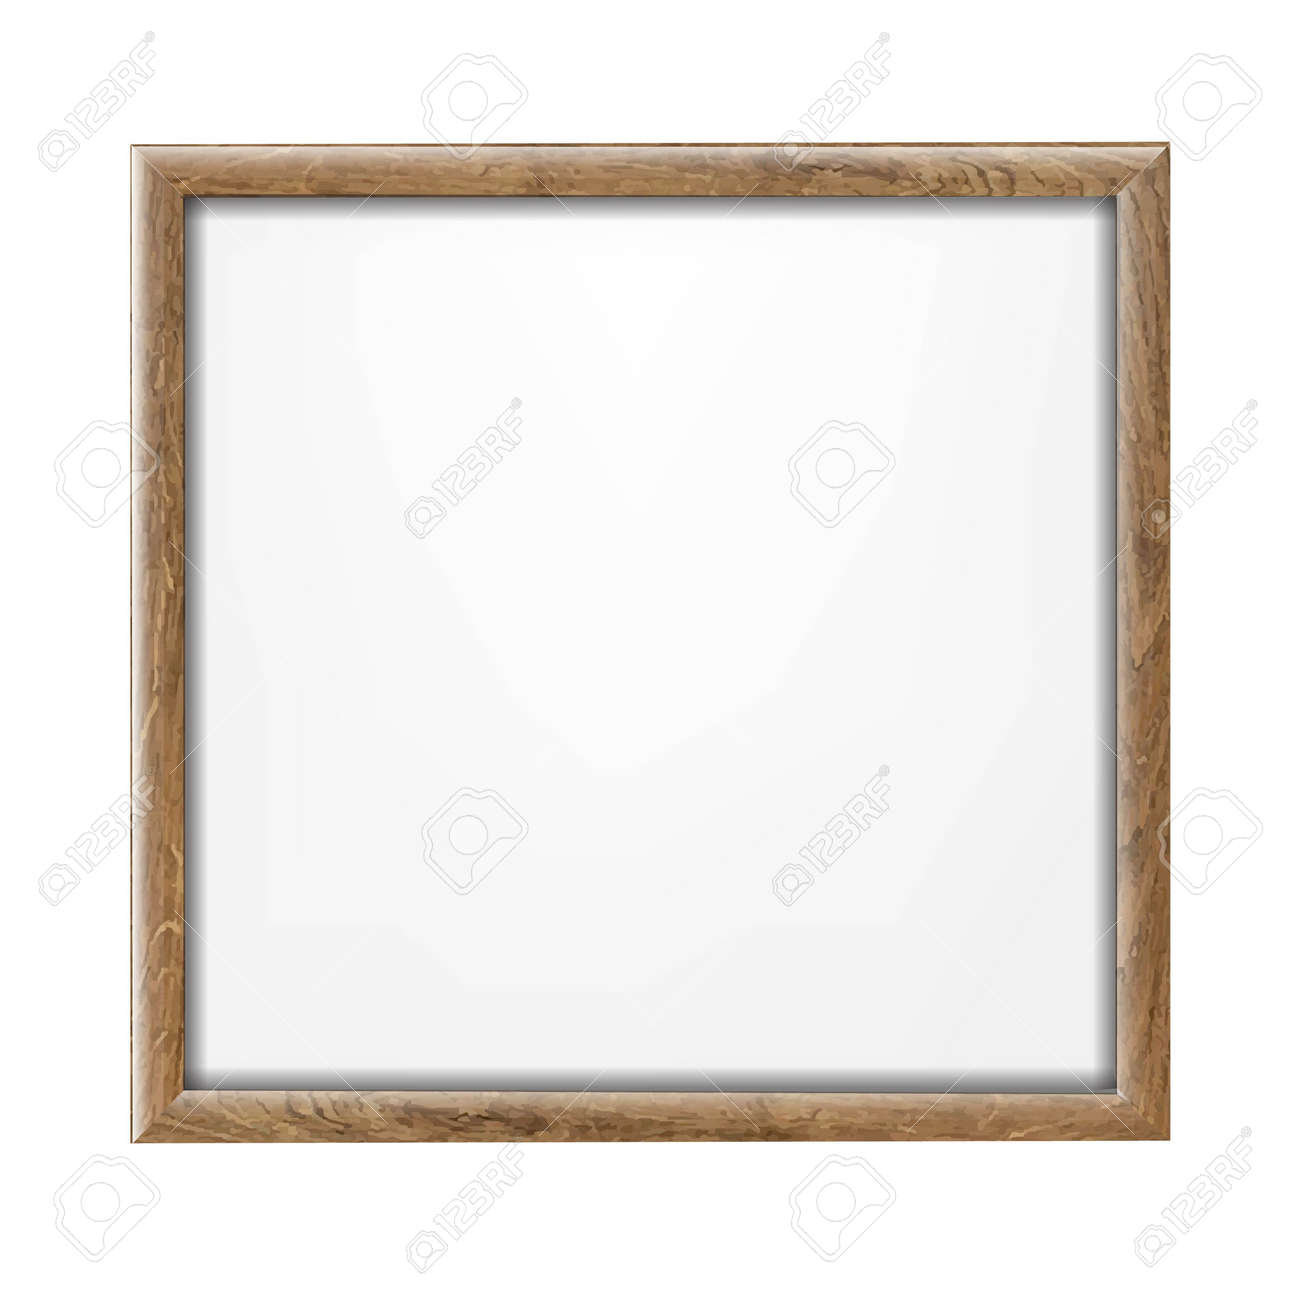 Board With Paper With Gradient Mesh, Vector Illustration Stock Vector - 21902852